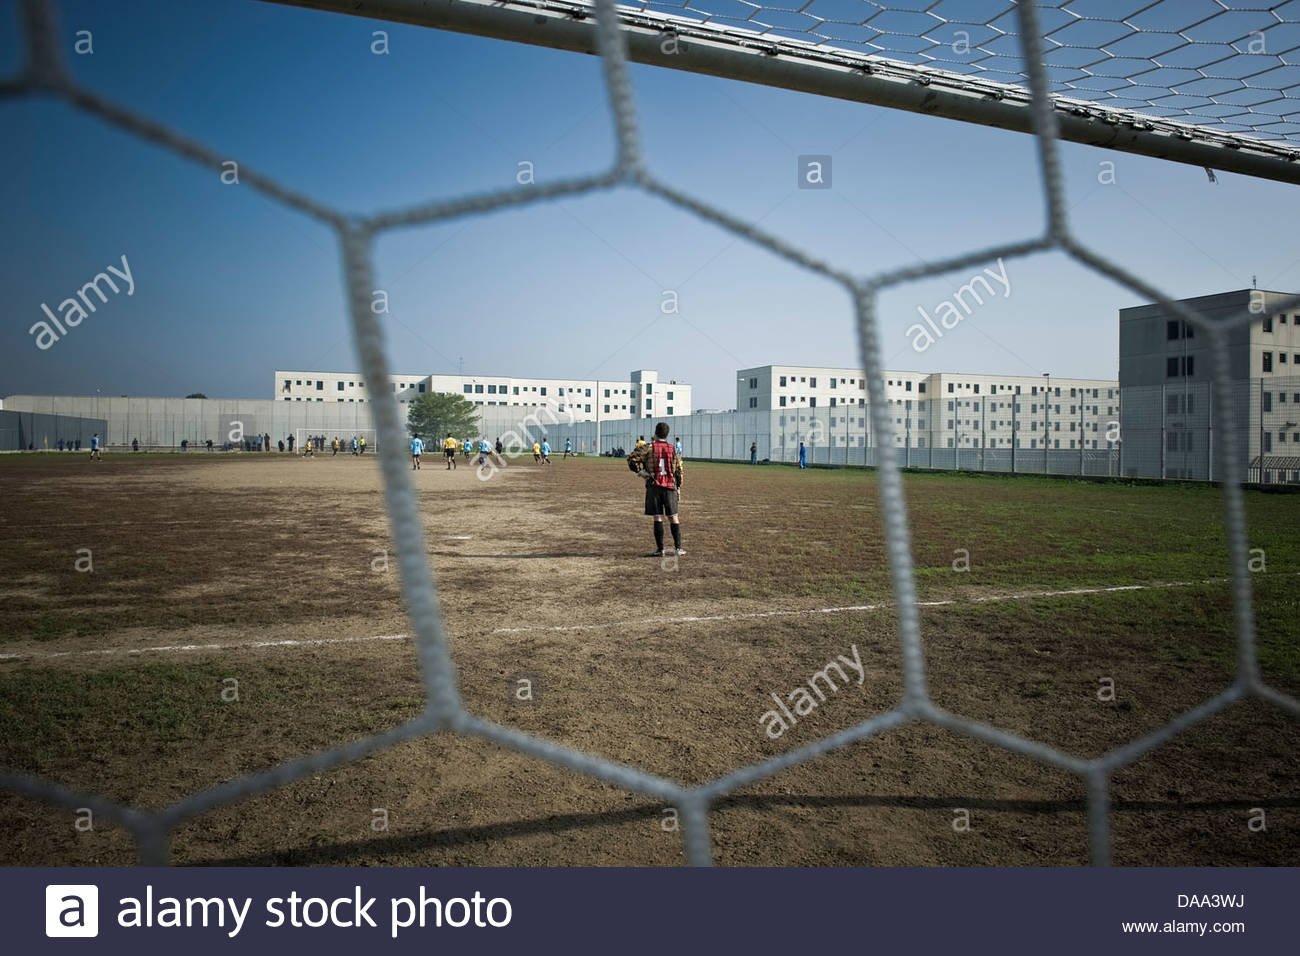 Italy,Bollate prison,football game inside the prison - Stock Image